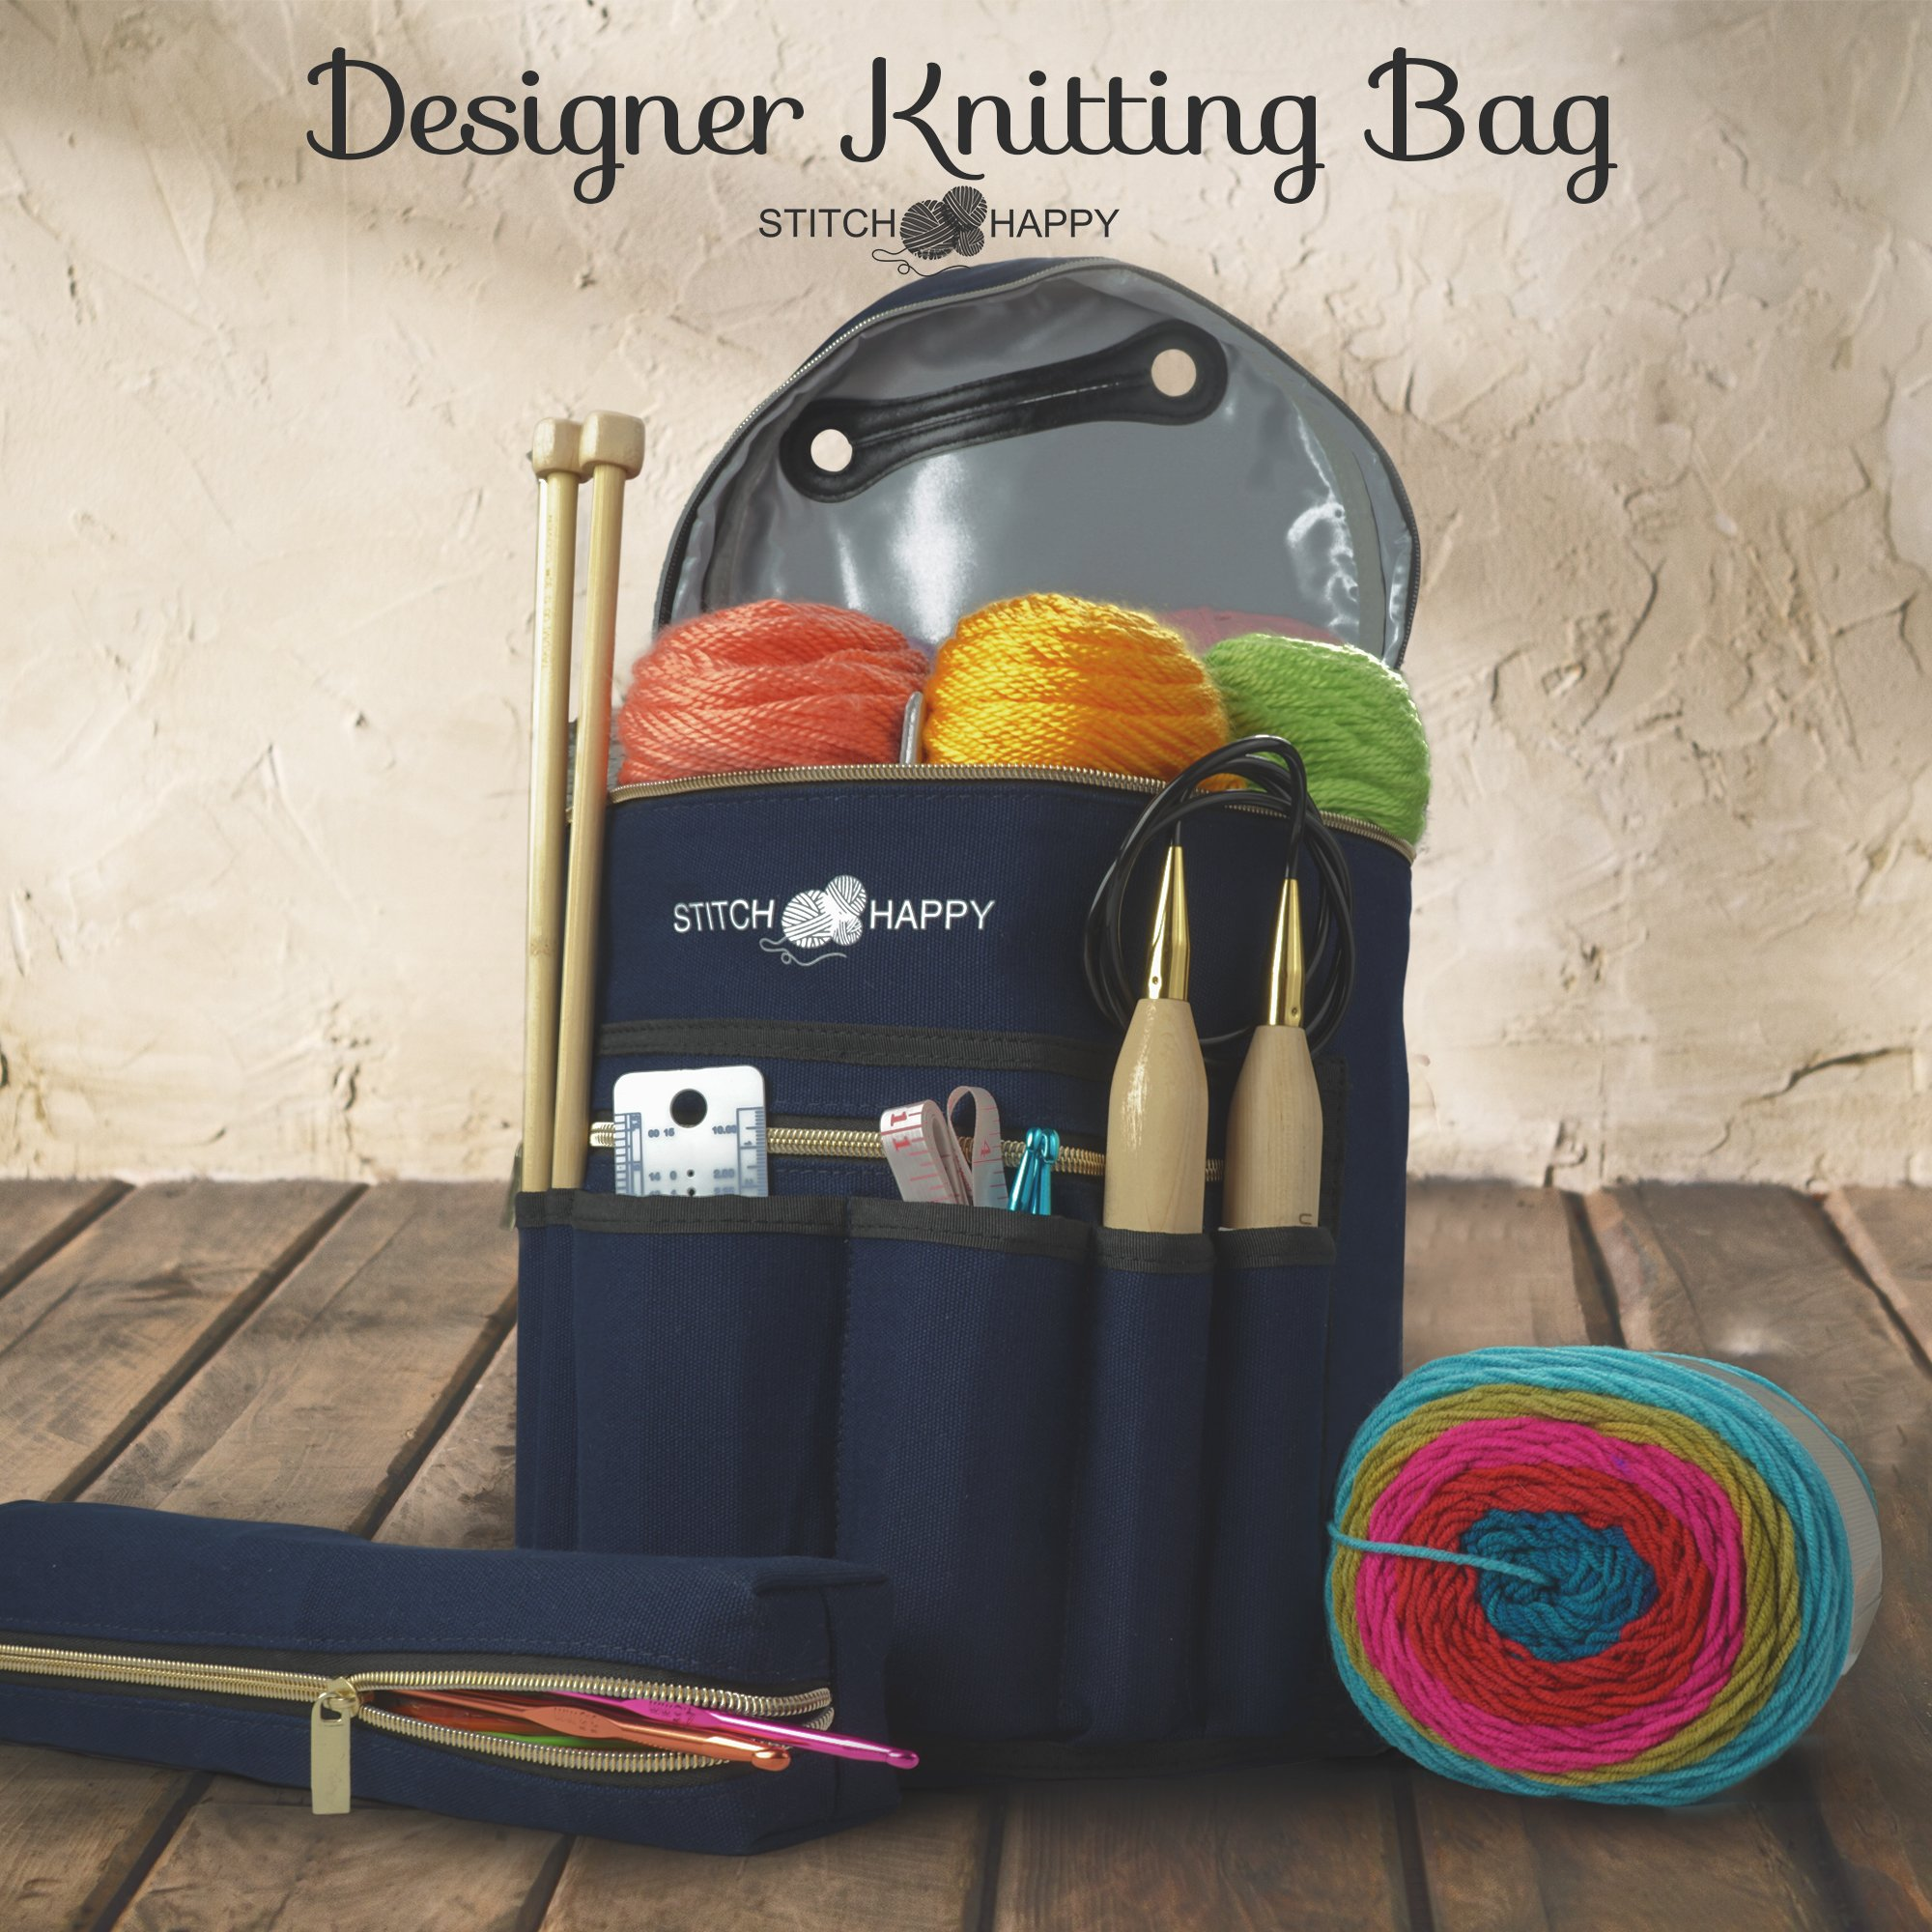 Knitting Bag - Yarn Tote Organizer w/Tool Case, 7 Pockets + Divider for Extra Storage of Projects, Supplies & Crochet (Navy) by Stitch Happy by Stitch Happy (Image #2)